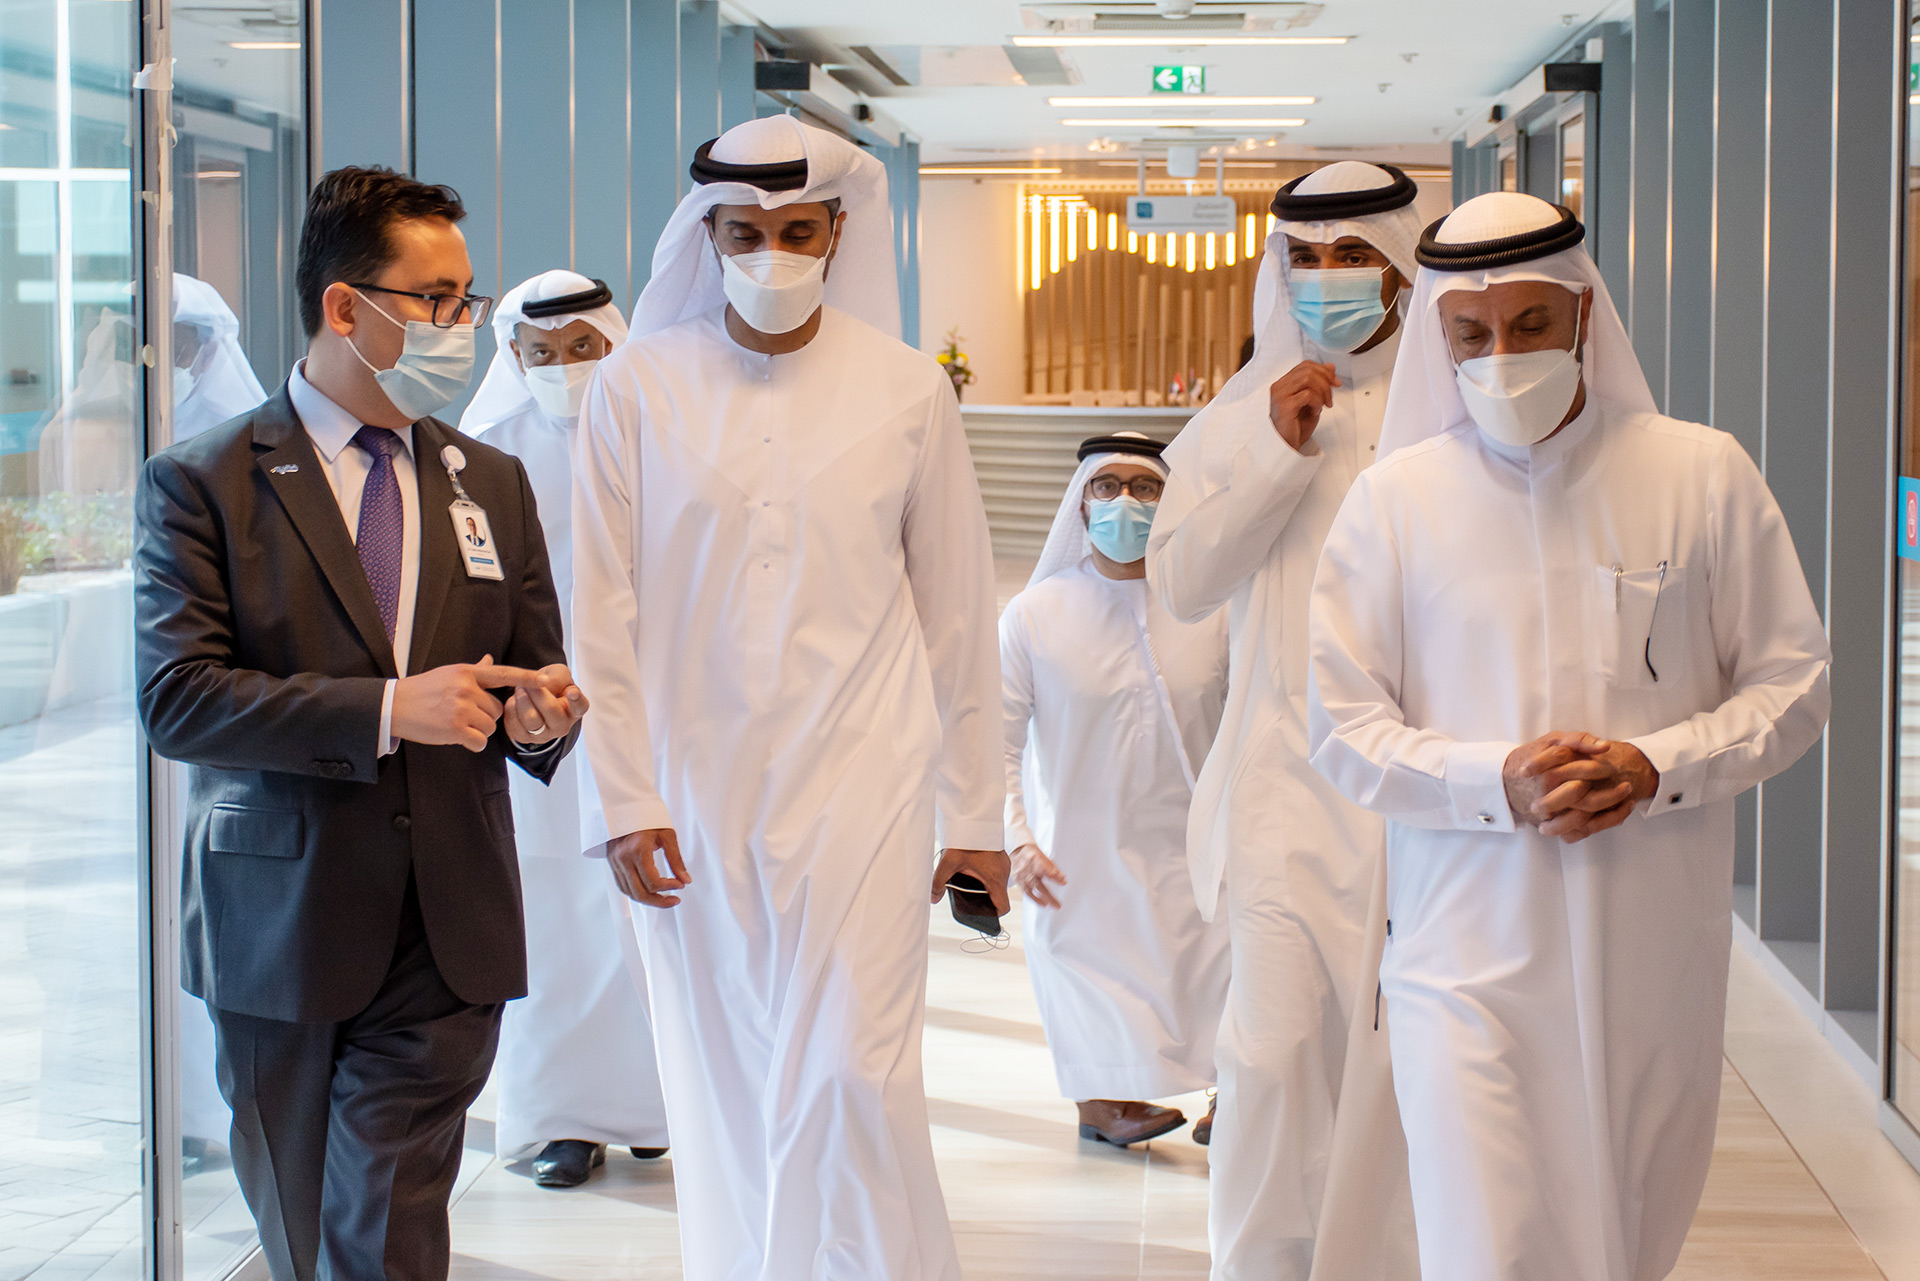 H.E Abdulla Al Basti in Hospital Tour With Dr. Fatih